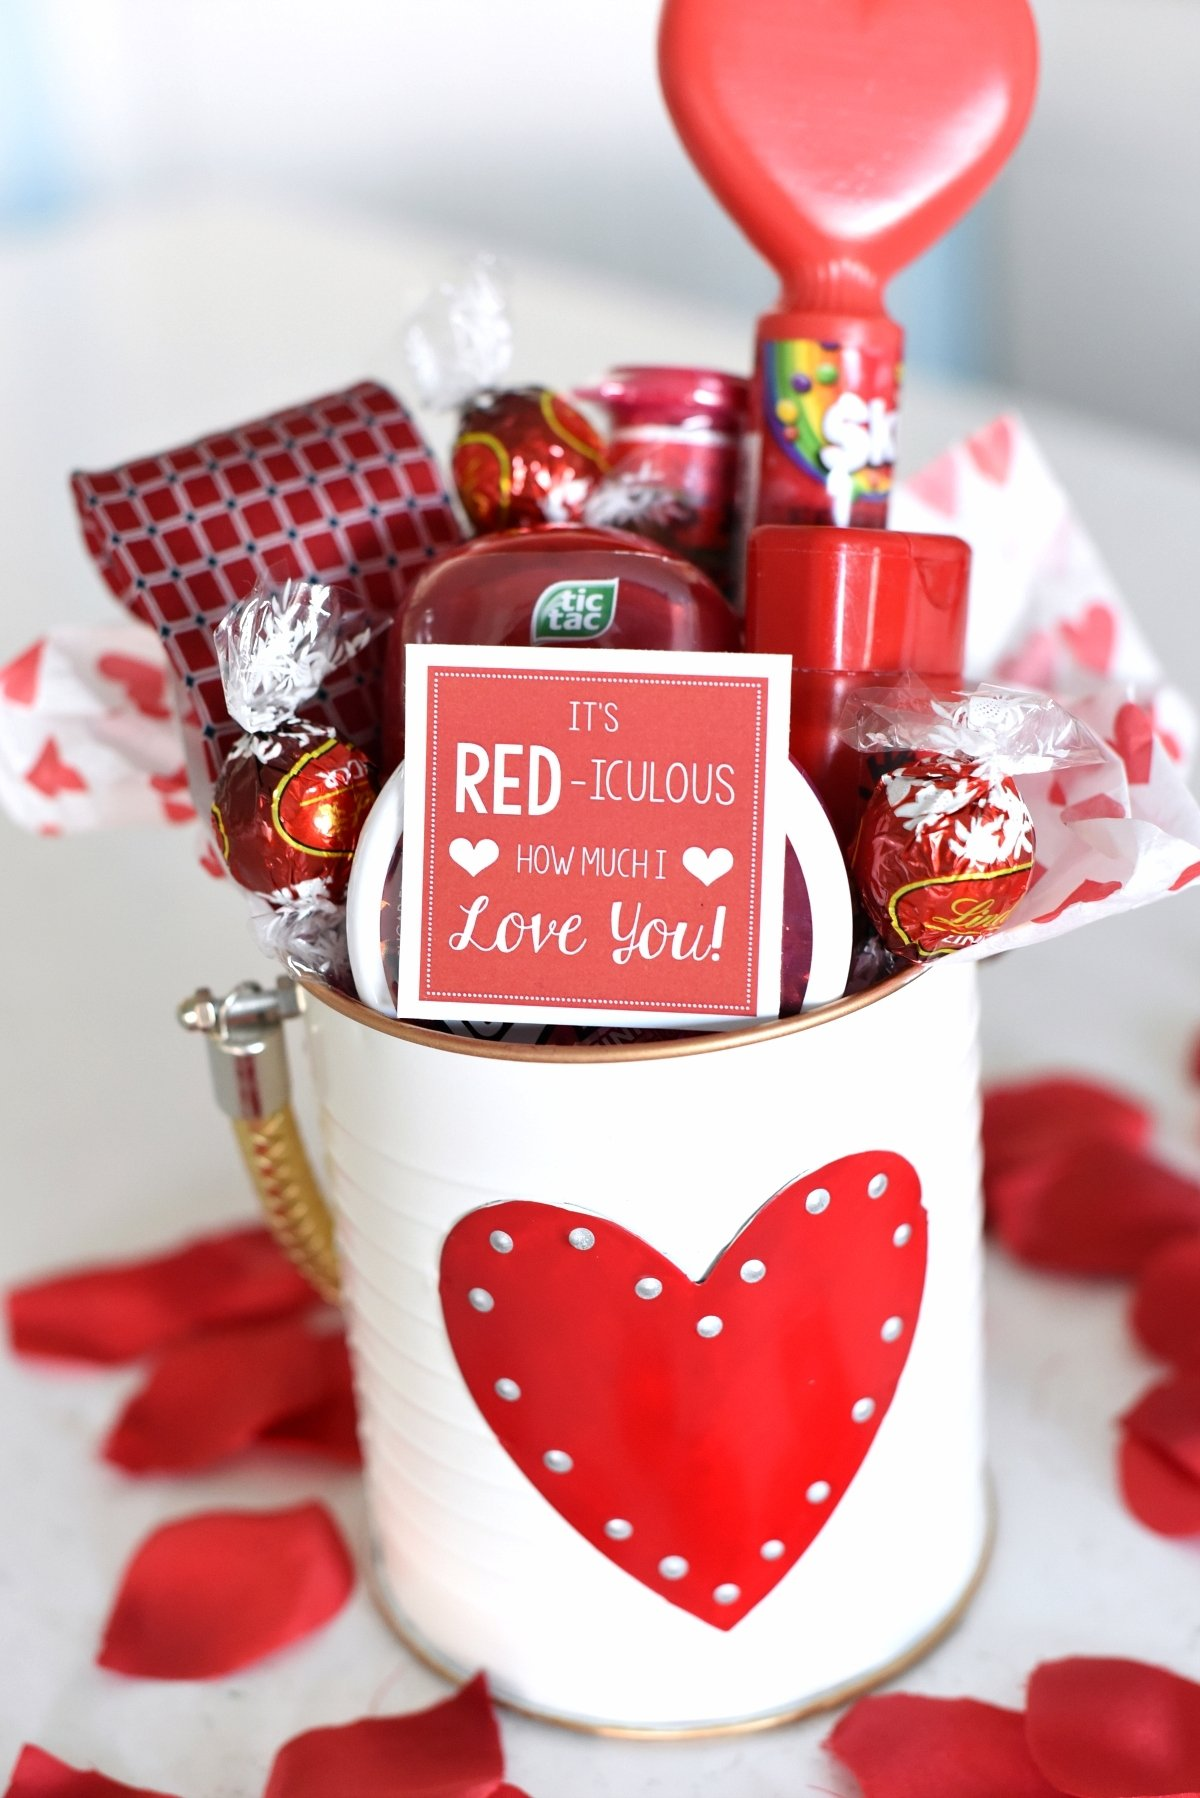 10 Fantastic Valentines Day Ideas For Wife cute valentines day gift idea red iculous basket 1